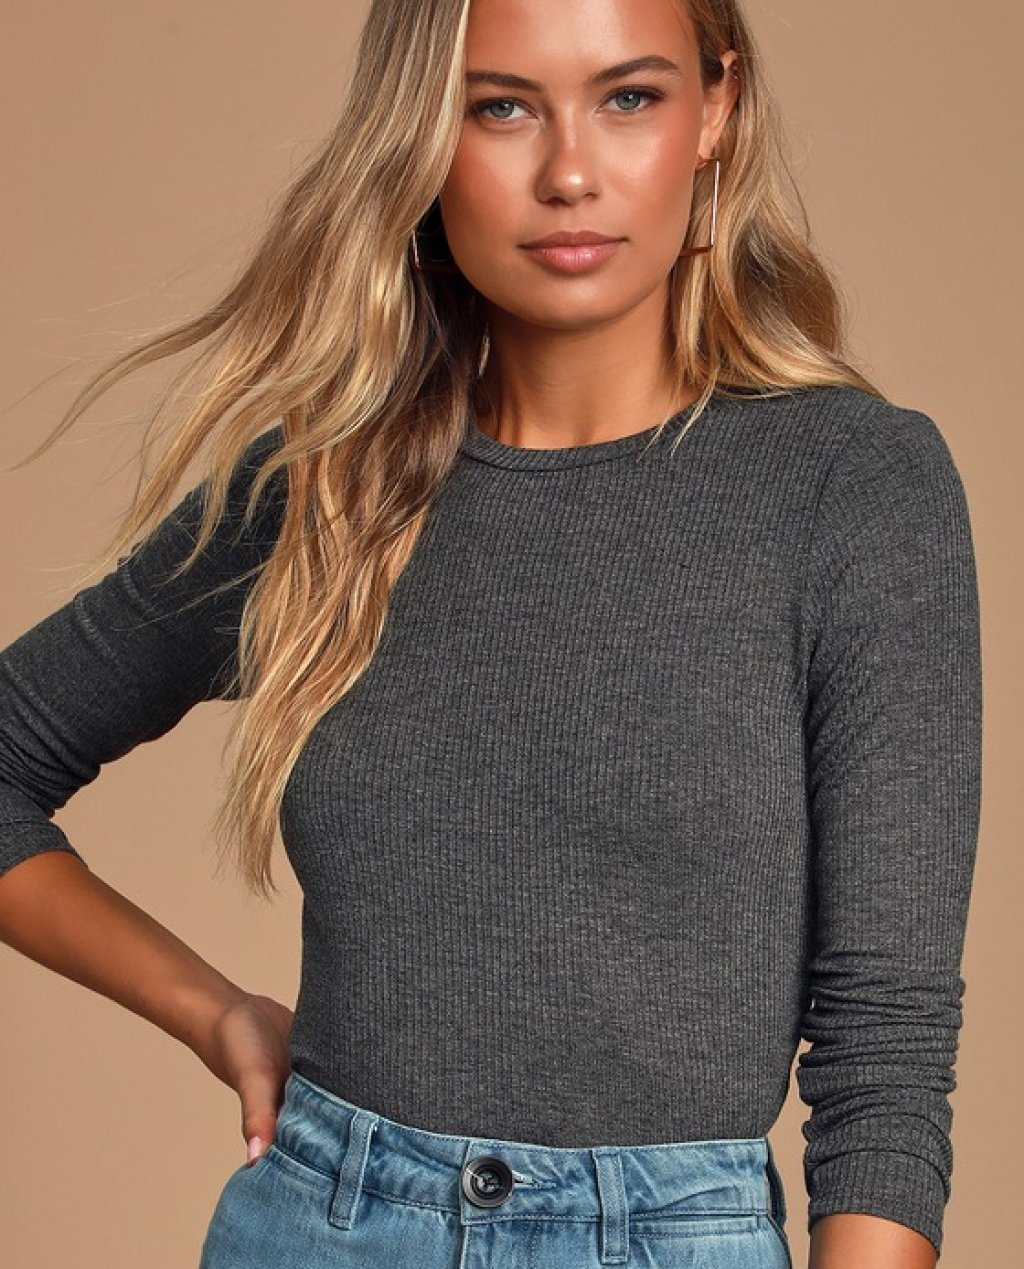 Hollis Heather Charcoal Grey Ribbed Long Sleeve Crop Top